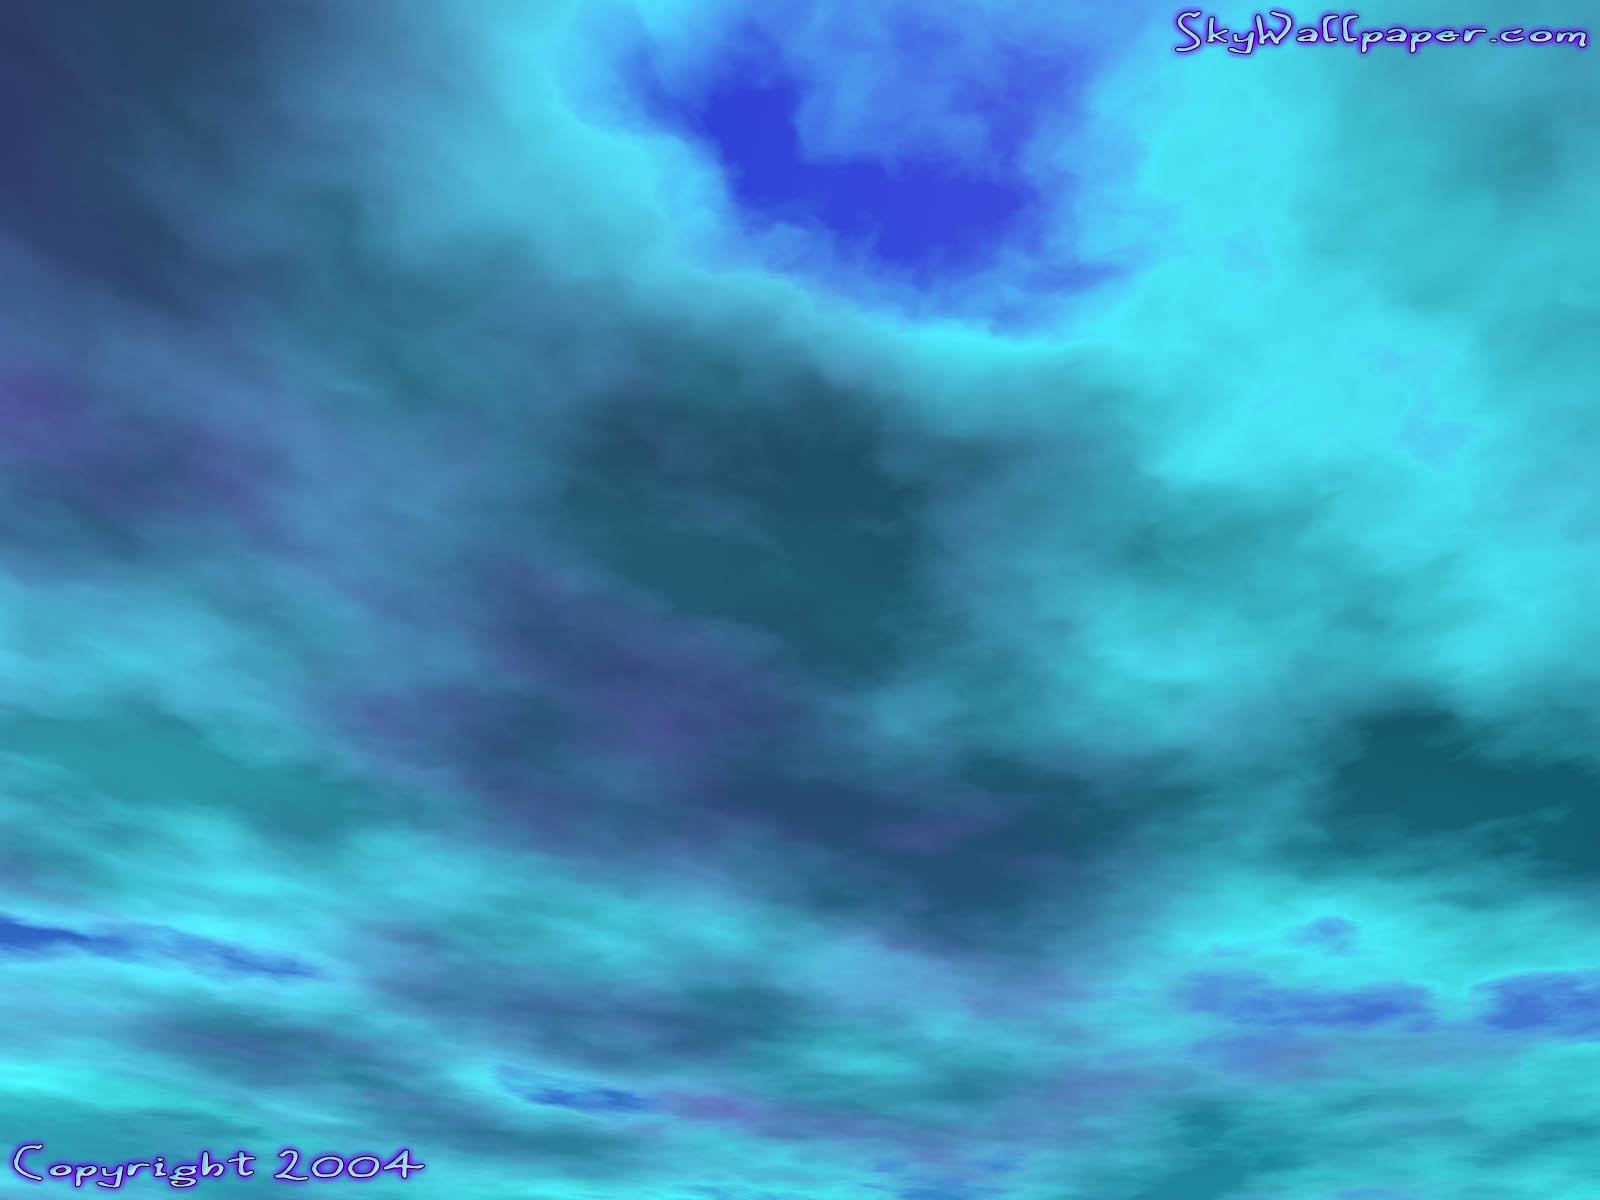 """Digital Sky Wallpaper Image"" - Wallpaper No.1.  Click for 640x480 or select another size."